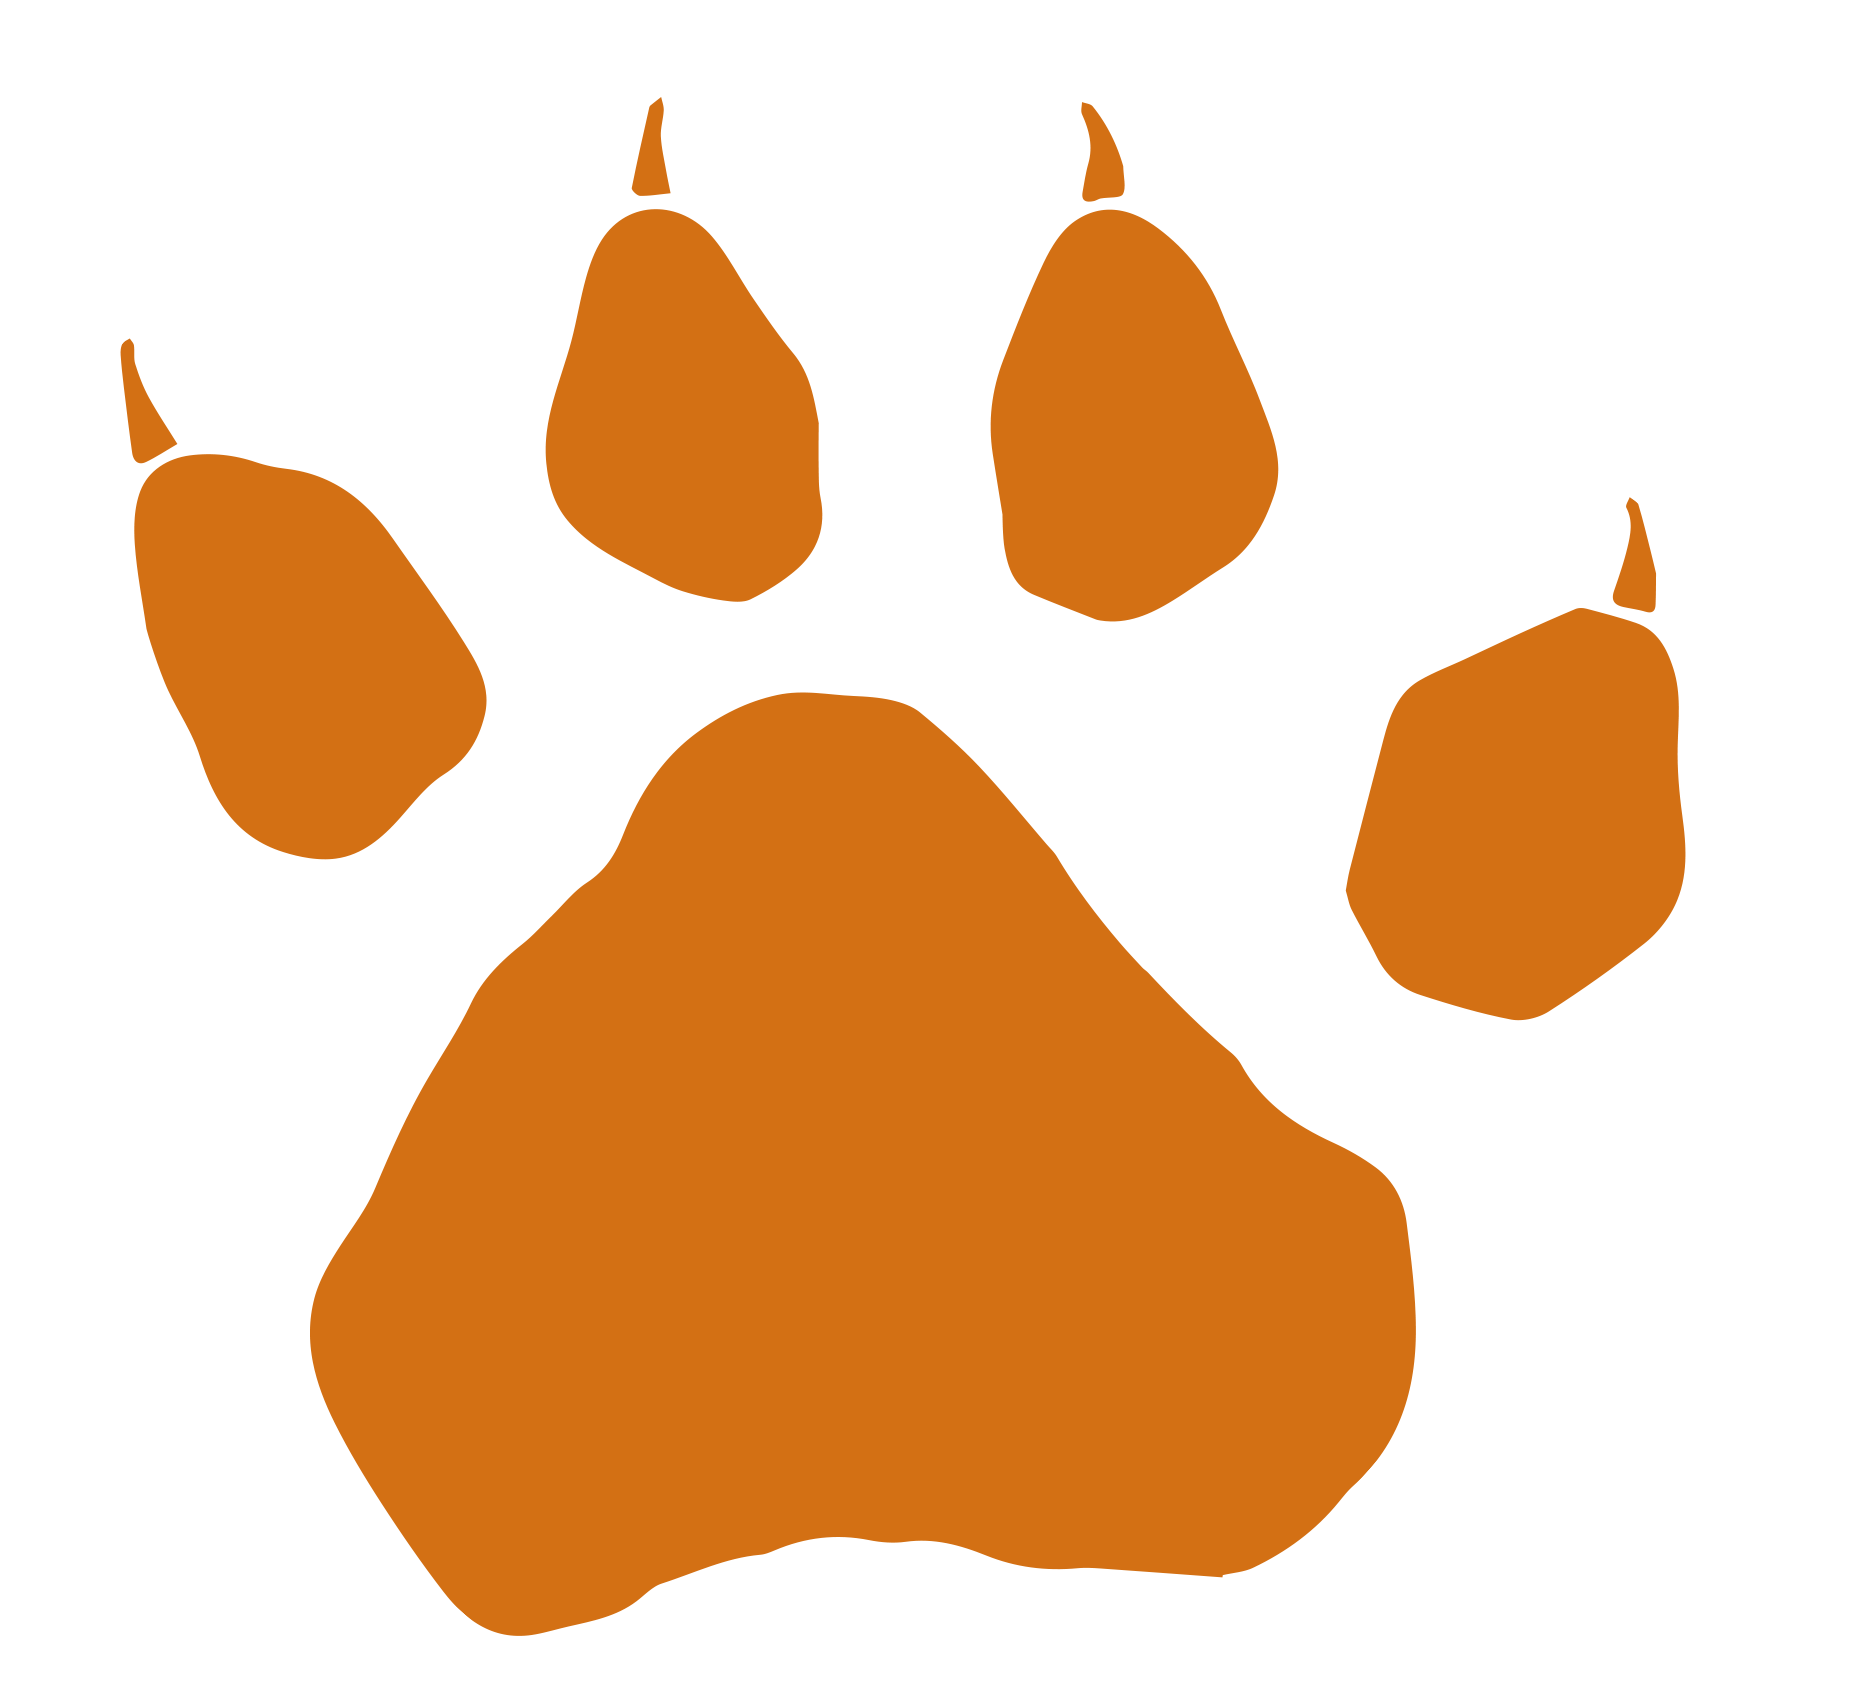 Lion paw png. Leovegas media company images